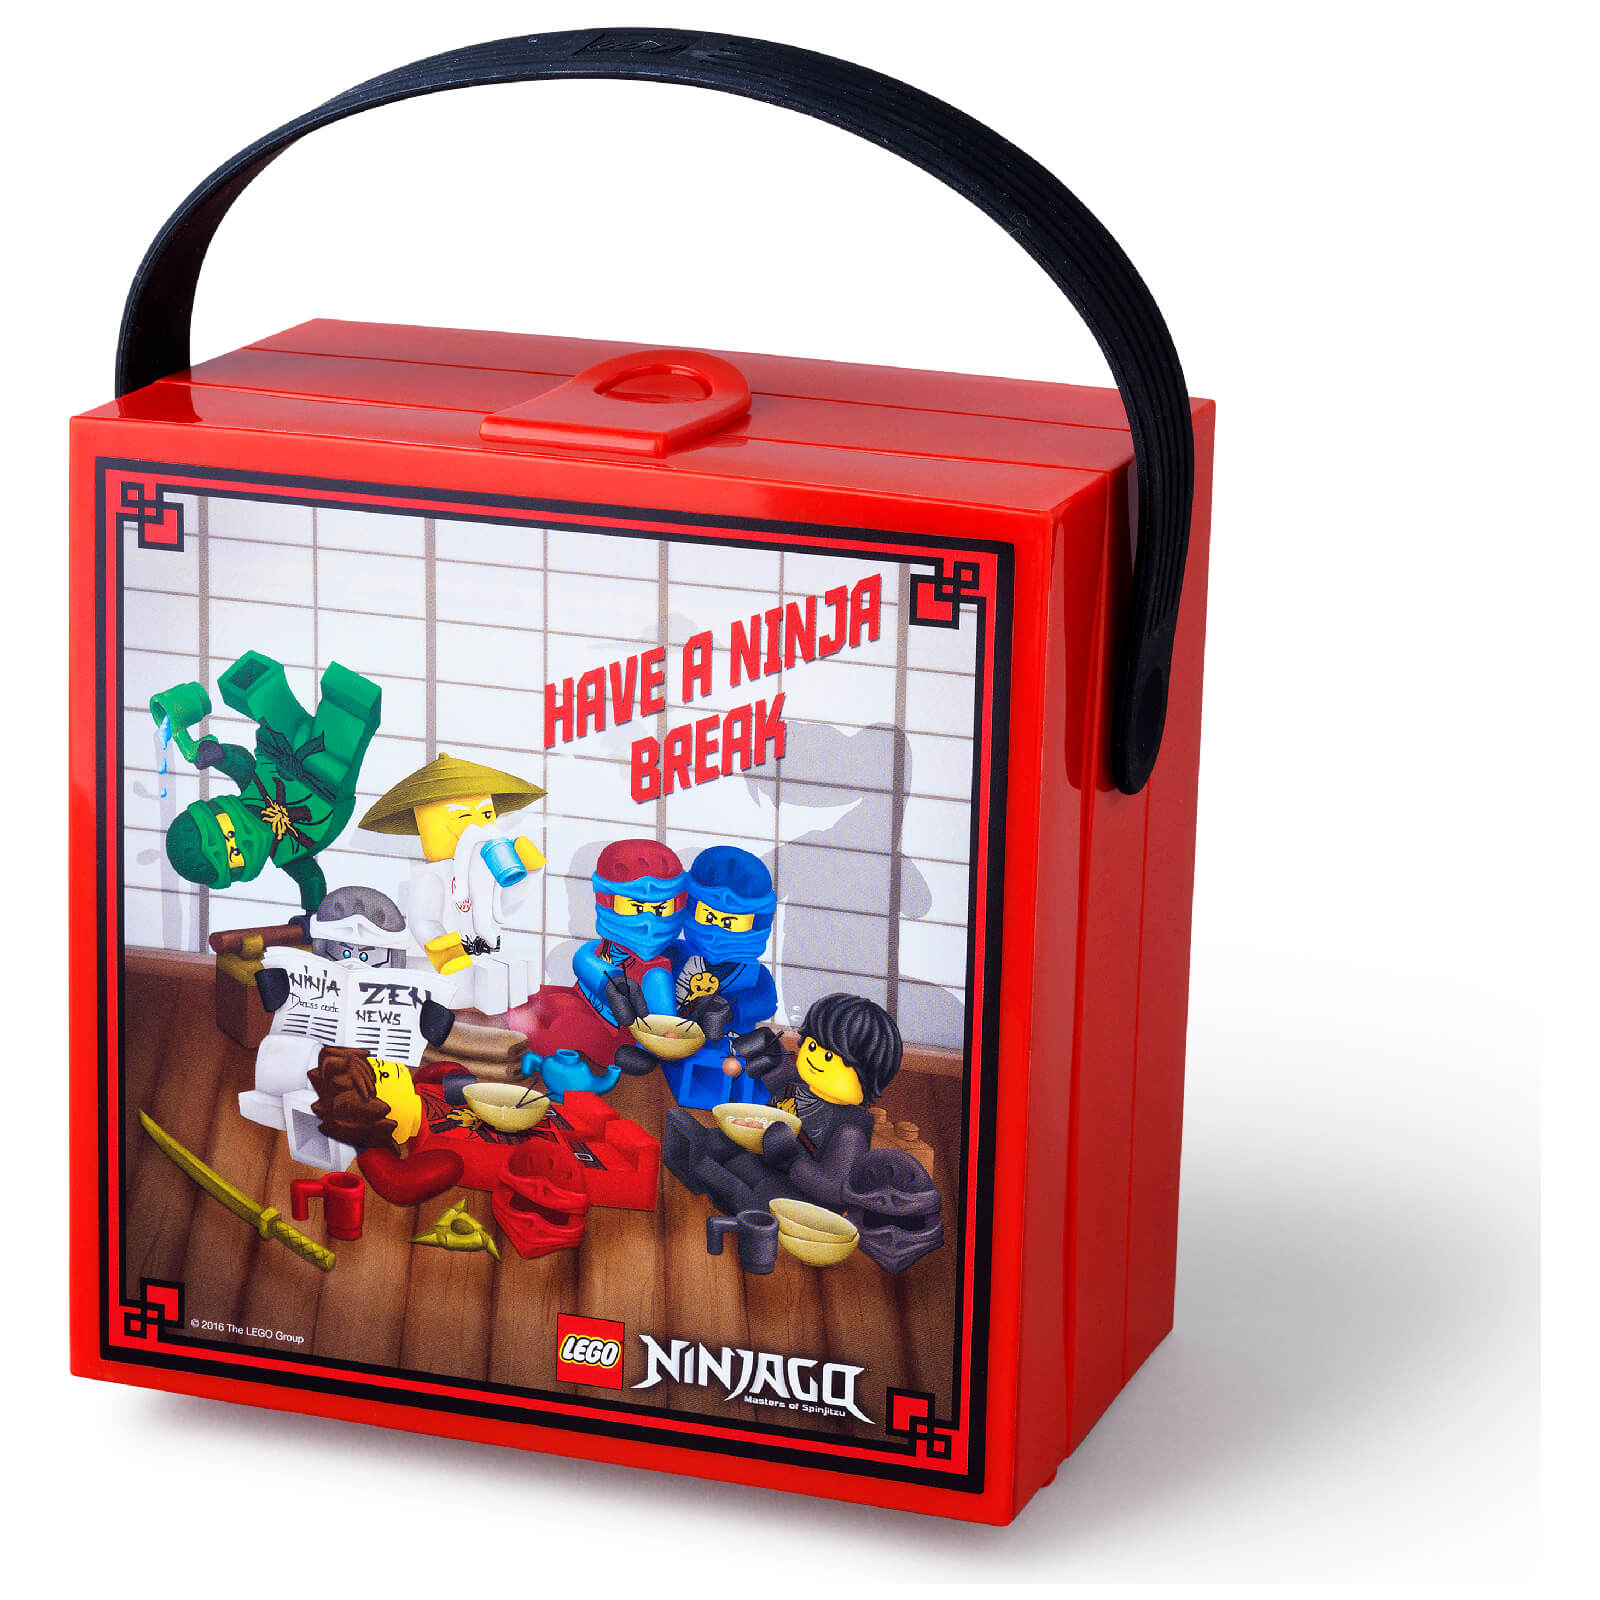 LEGO Lunch Box with Handle - LEGO Ninjago